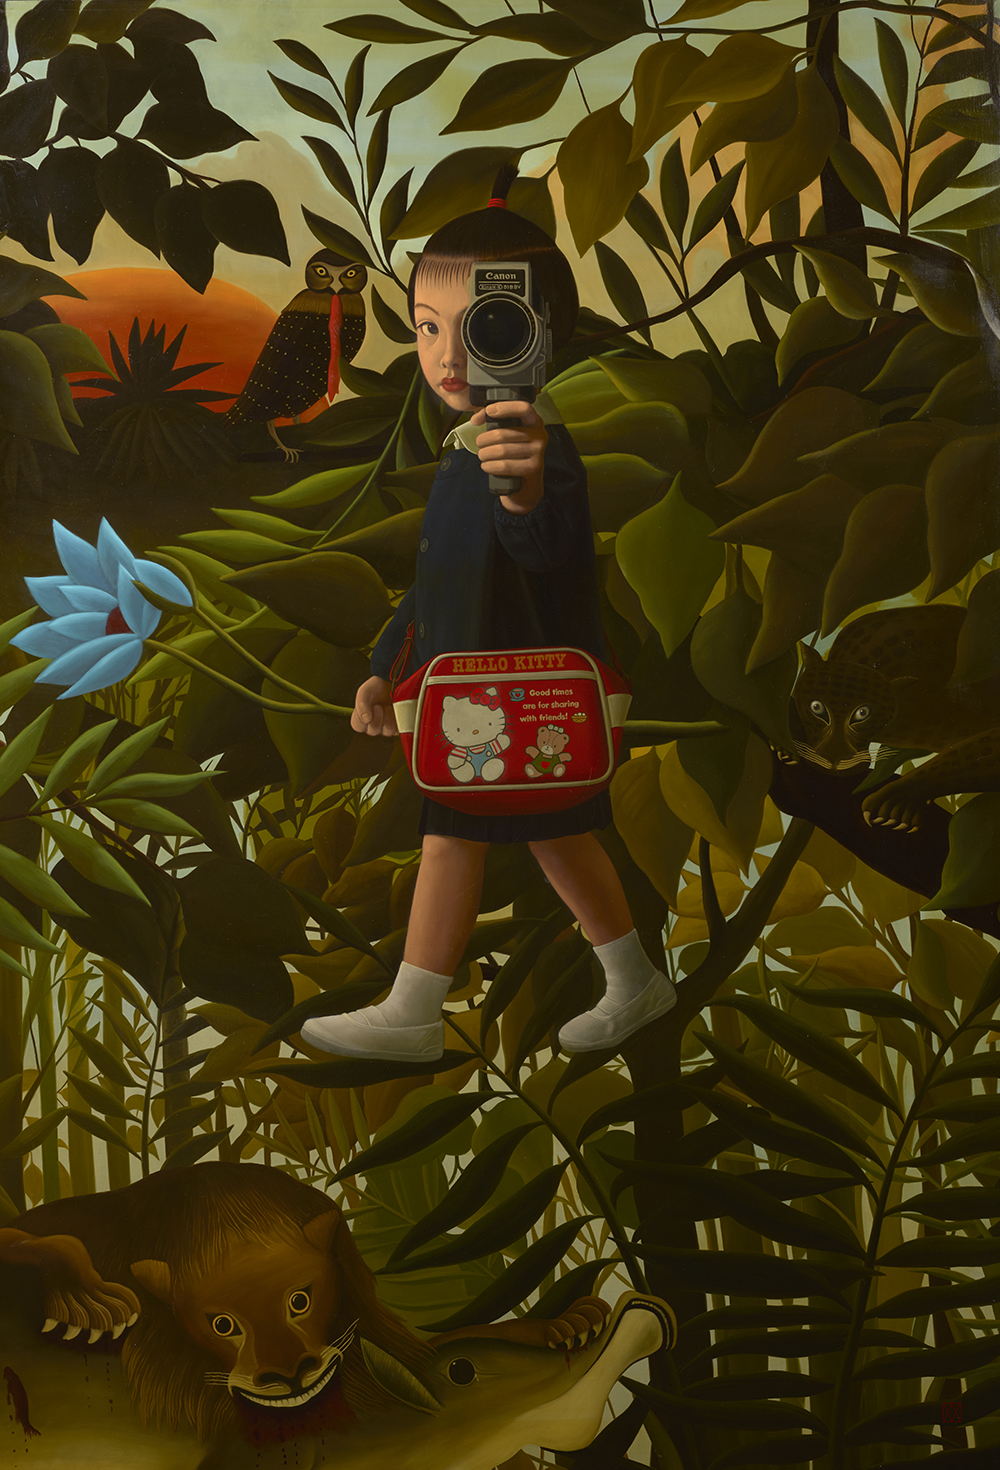 Naoko Walking in Rousseau's Forest <br /> Oil  on canvasboard <br /> 63.75 x 44.12 inches <br />  $65,000.00